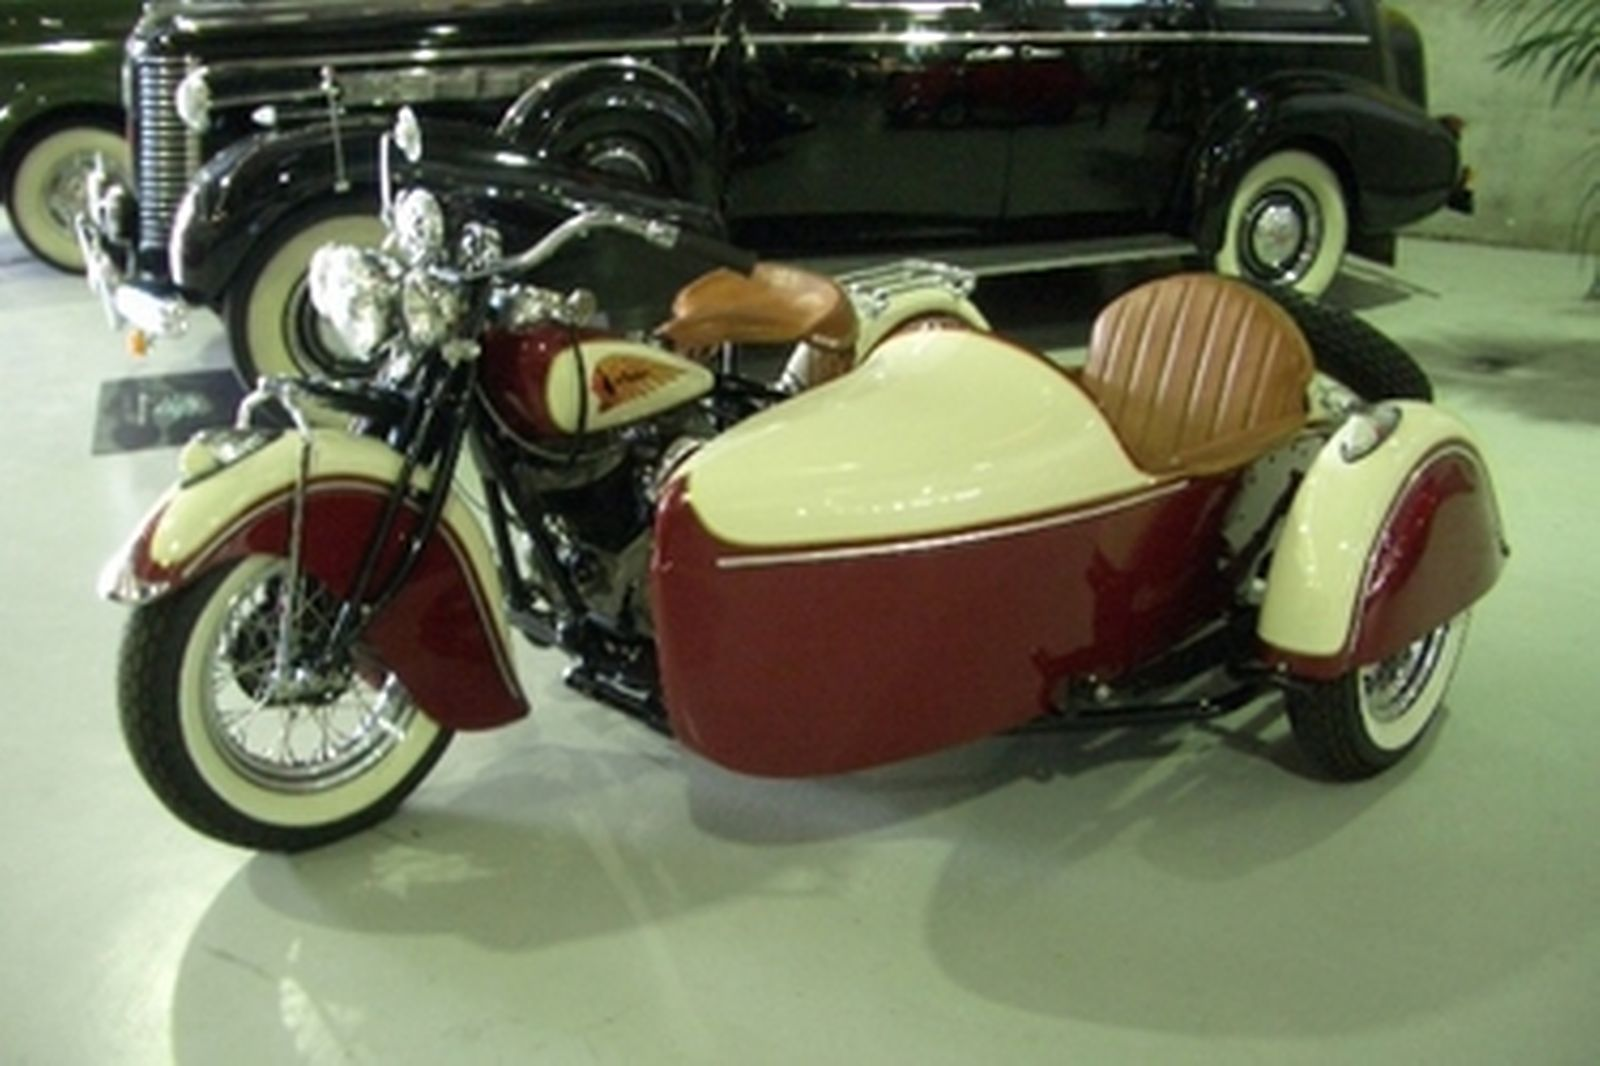 Indian Chief 1200cc with Indian Sidecar